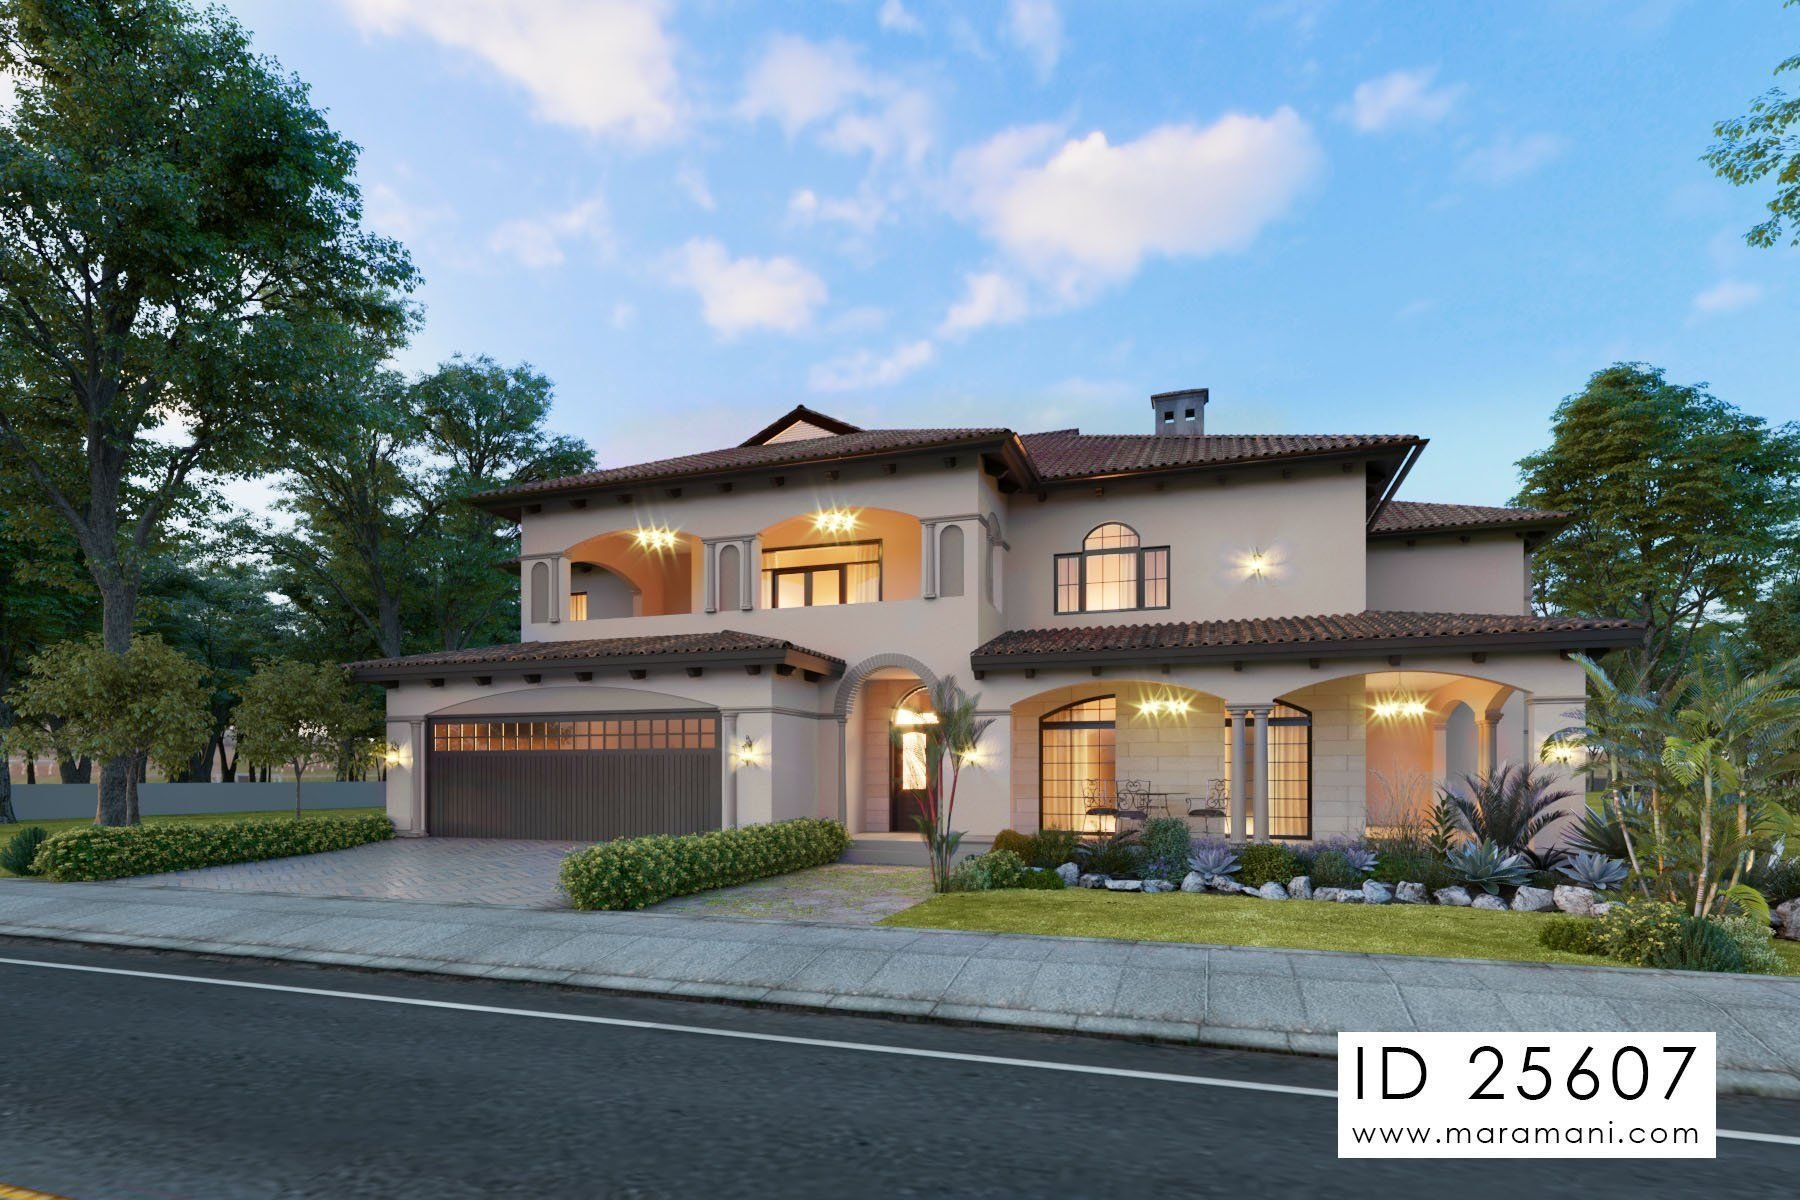 Best 5 Self Contained Bedrooms House Plan Id 25607 Maramani With Pictures